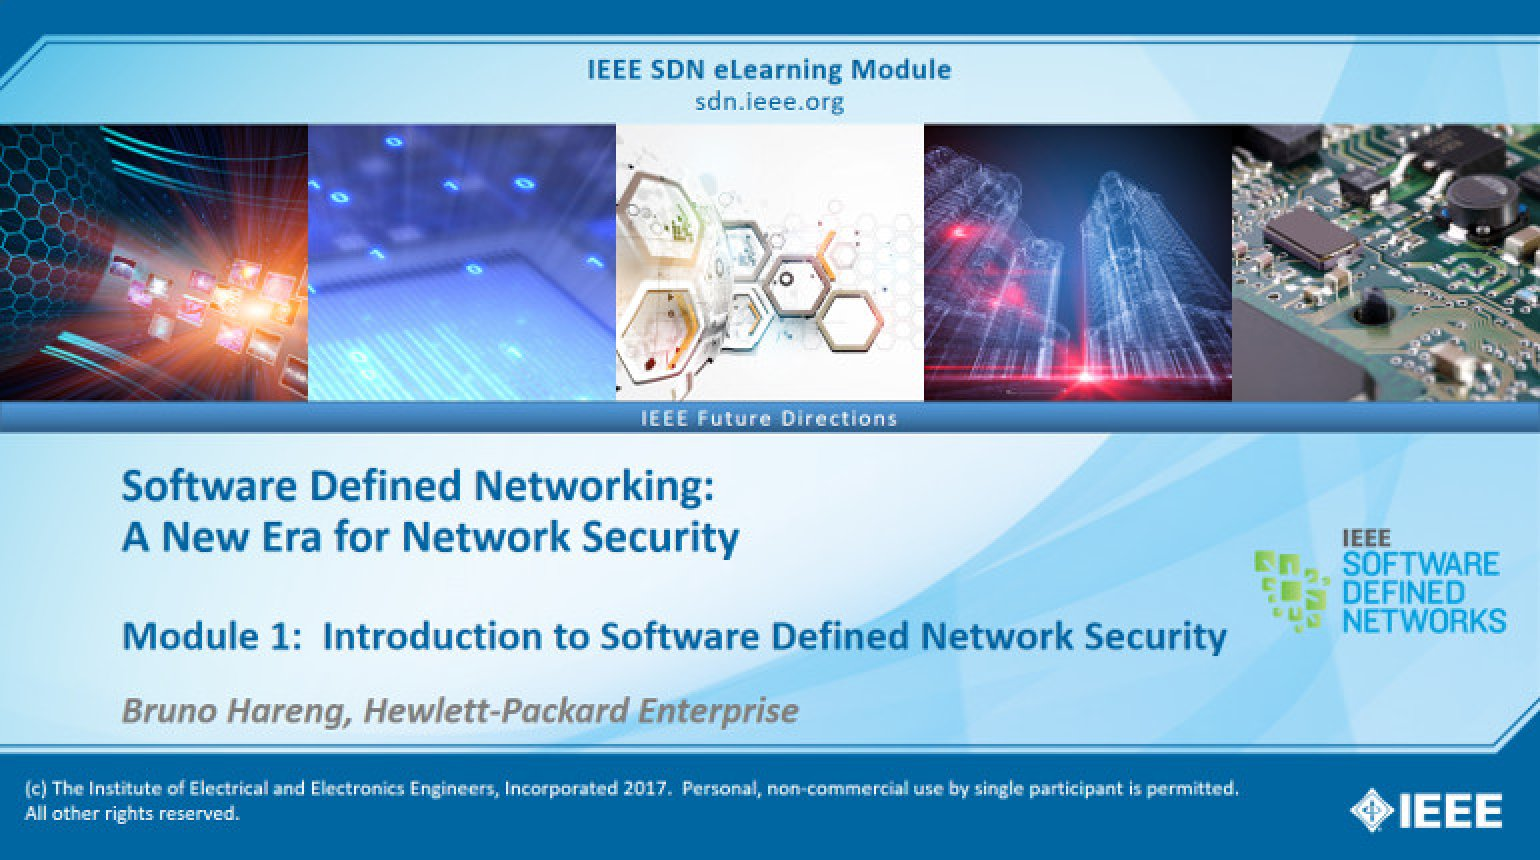 SDN and Security Module 1: An Introduction to Software Defined Network Security